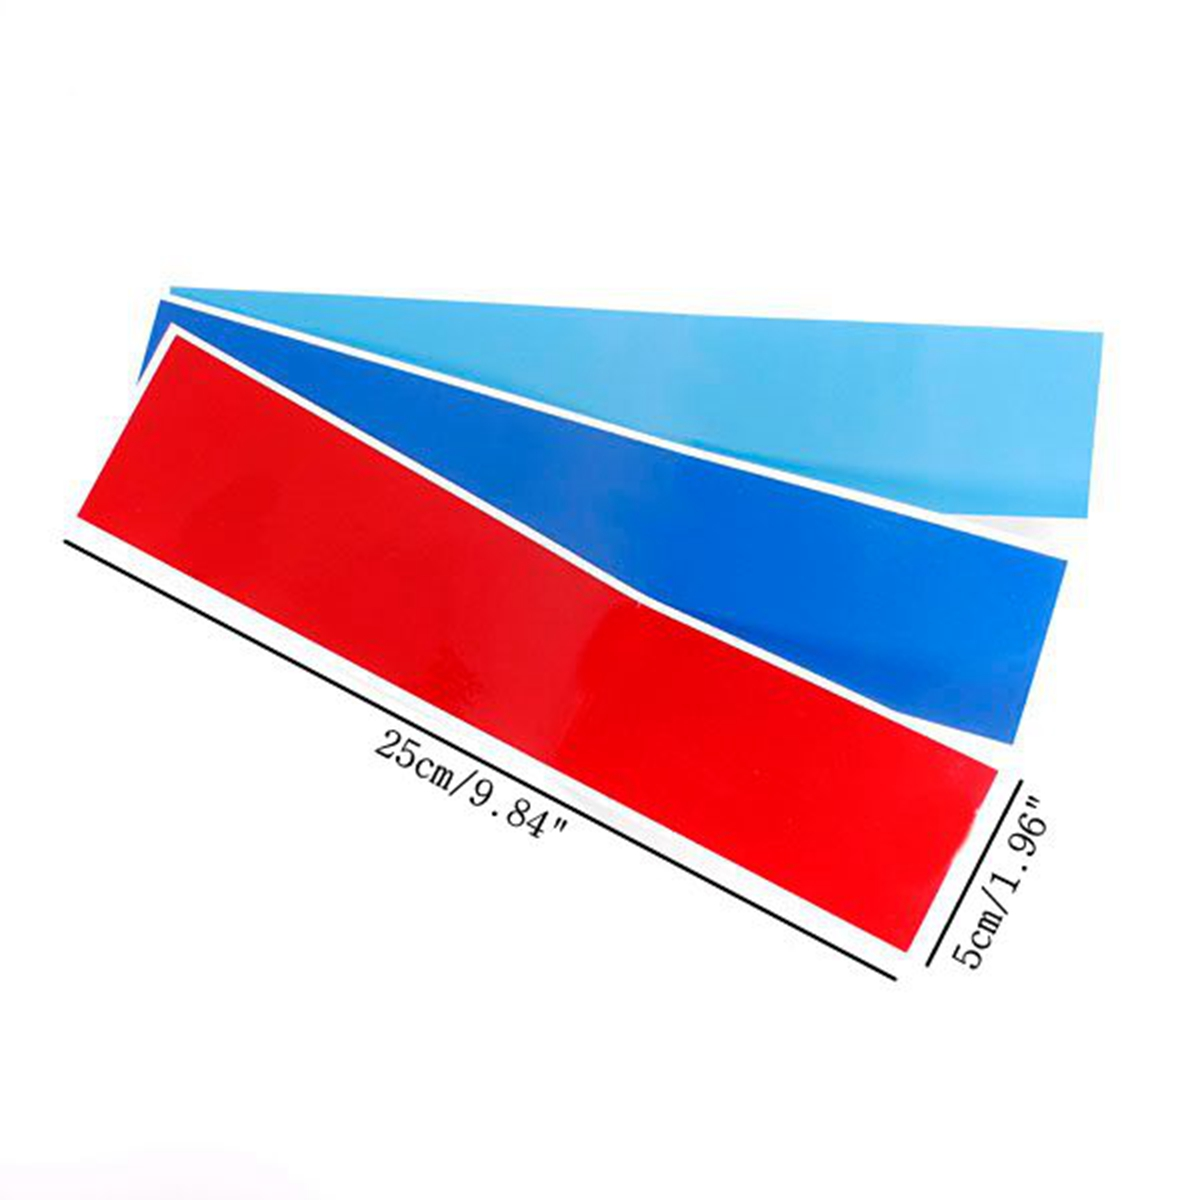 GRILLE KIDNEY M SPORT STRIPE COLOR DECAL VINYL STICKER FOR BMW - Bmw m colored kidney grille stripe decals